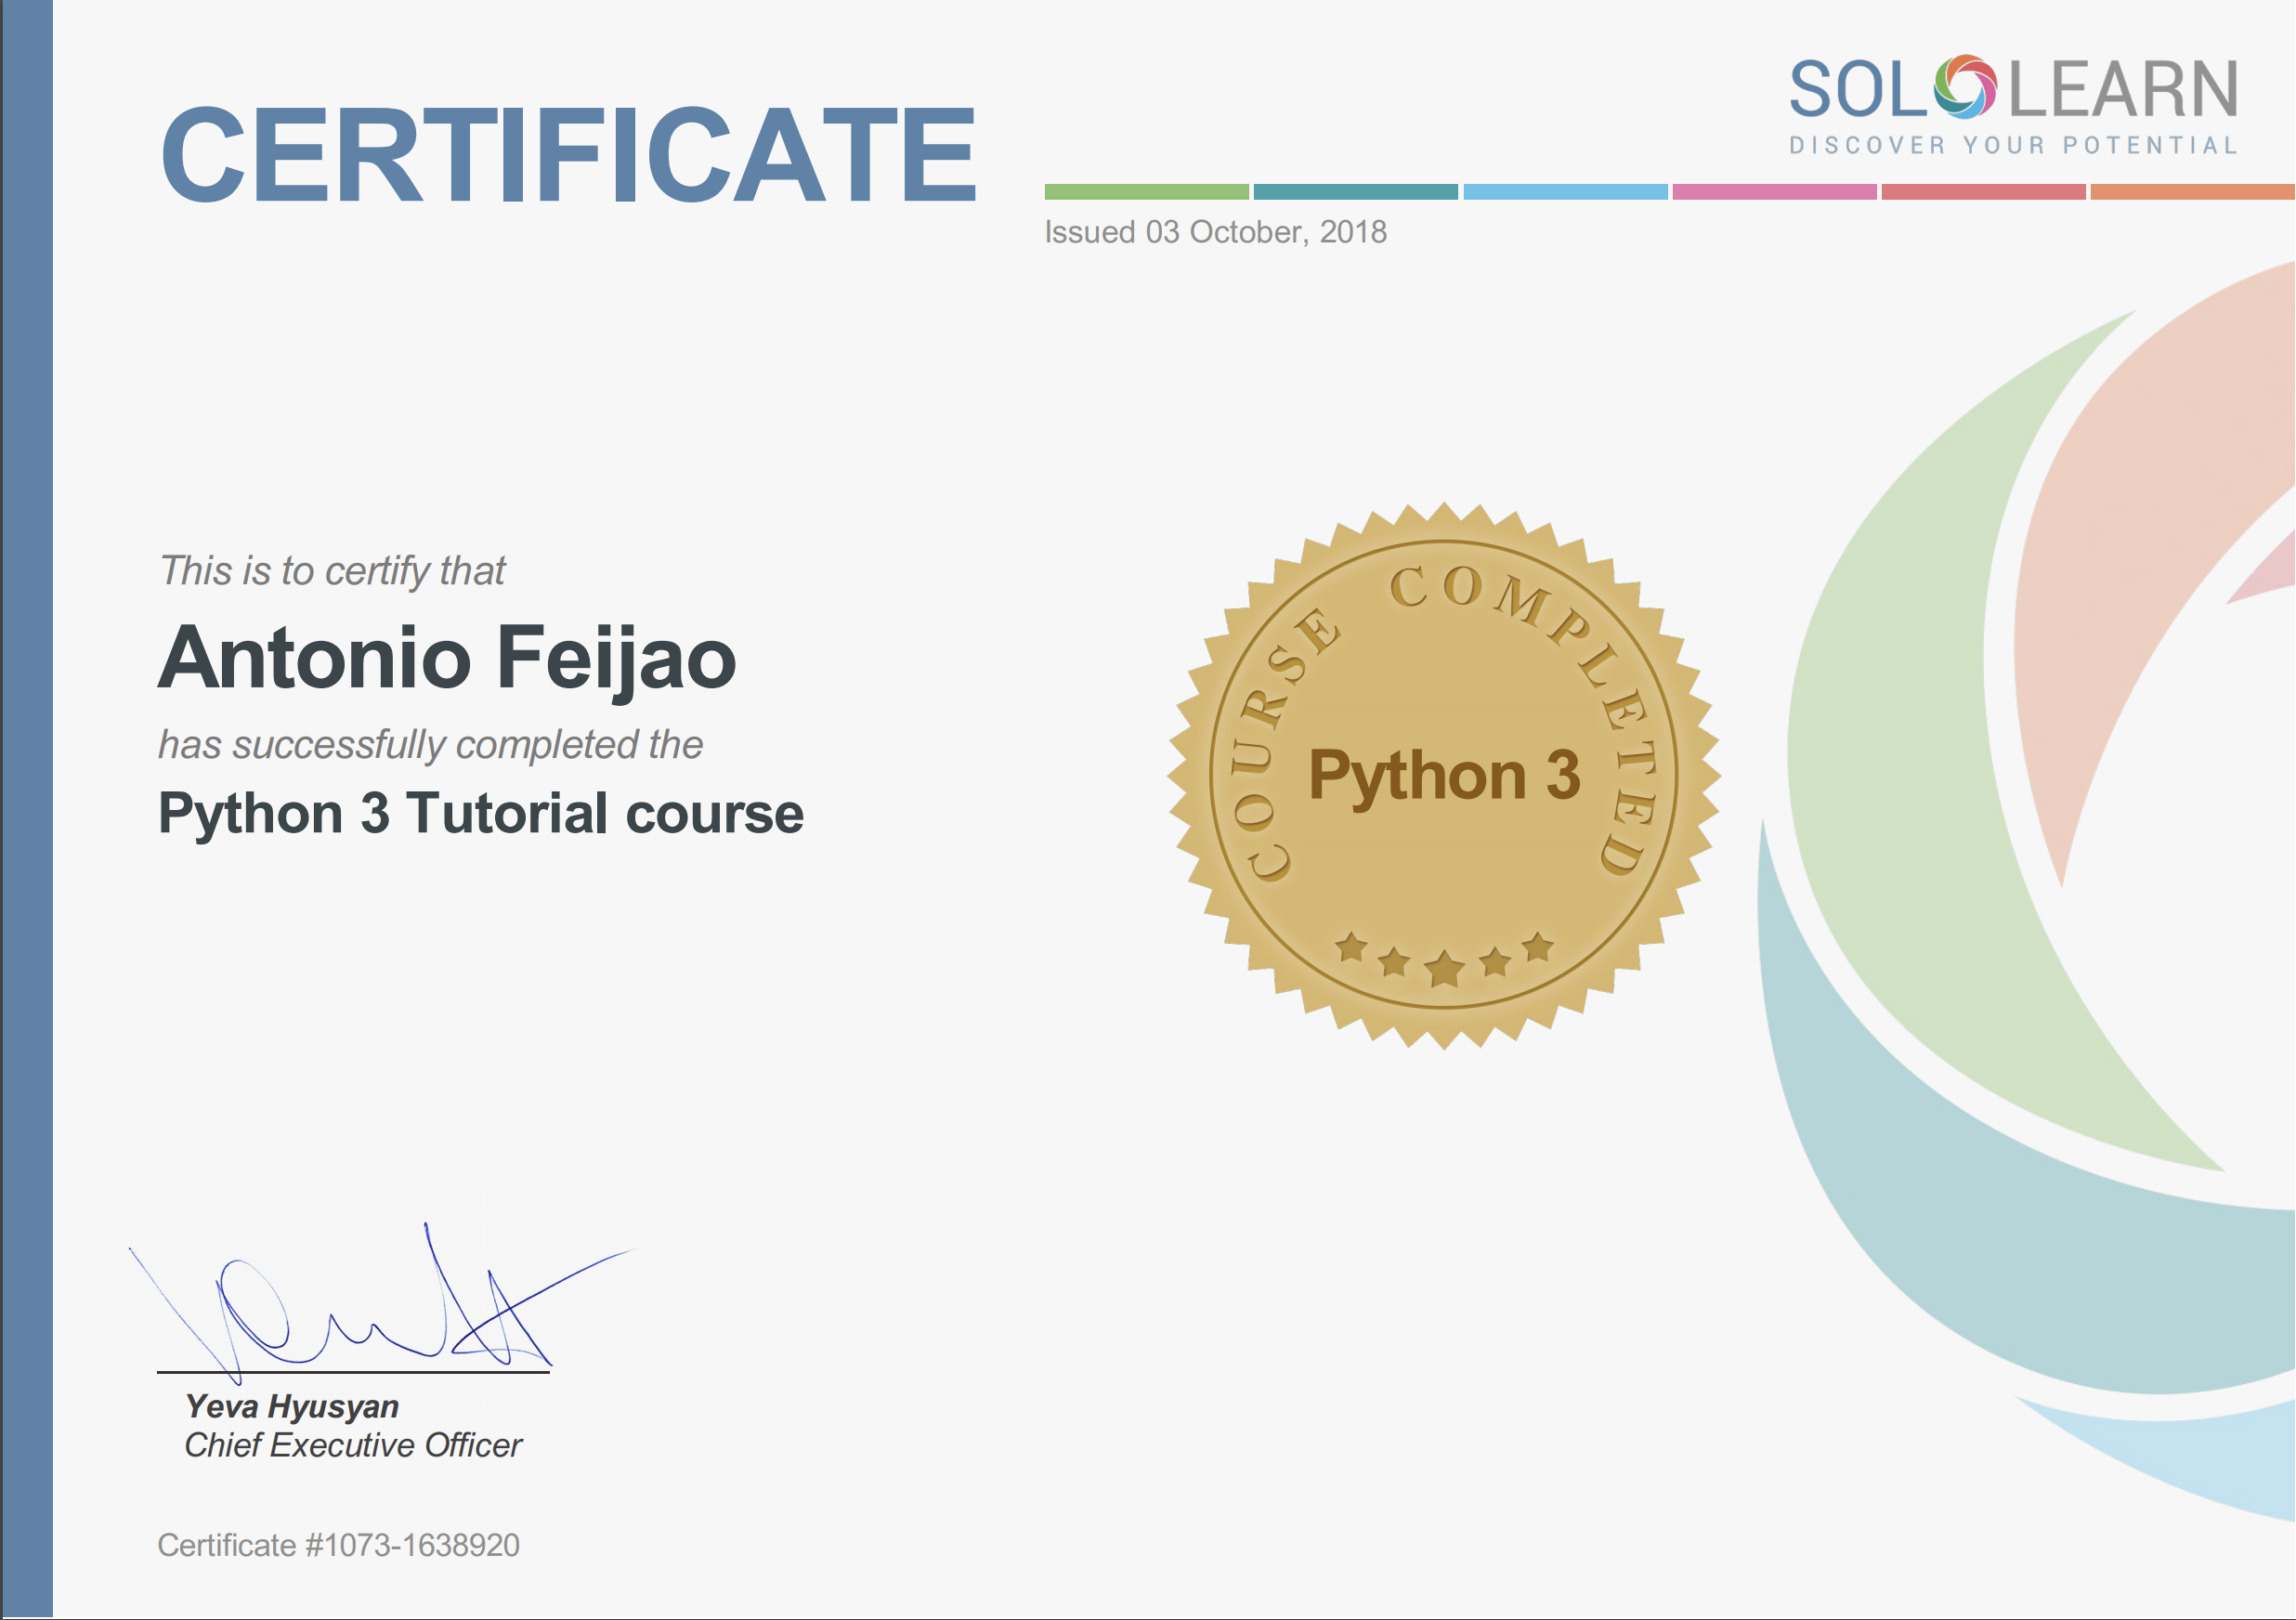 Antonio Feijao, Python 3, Python3, Programming language and coding